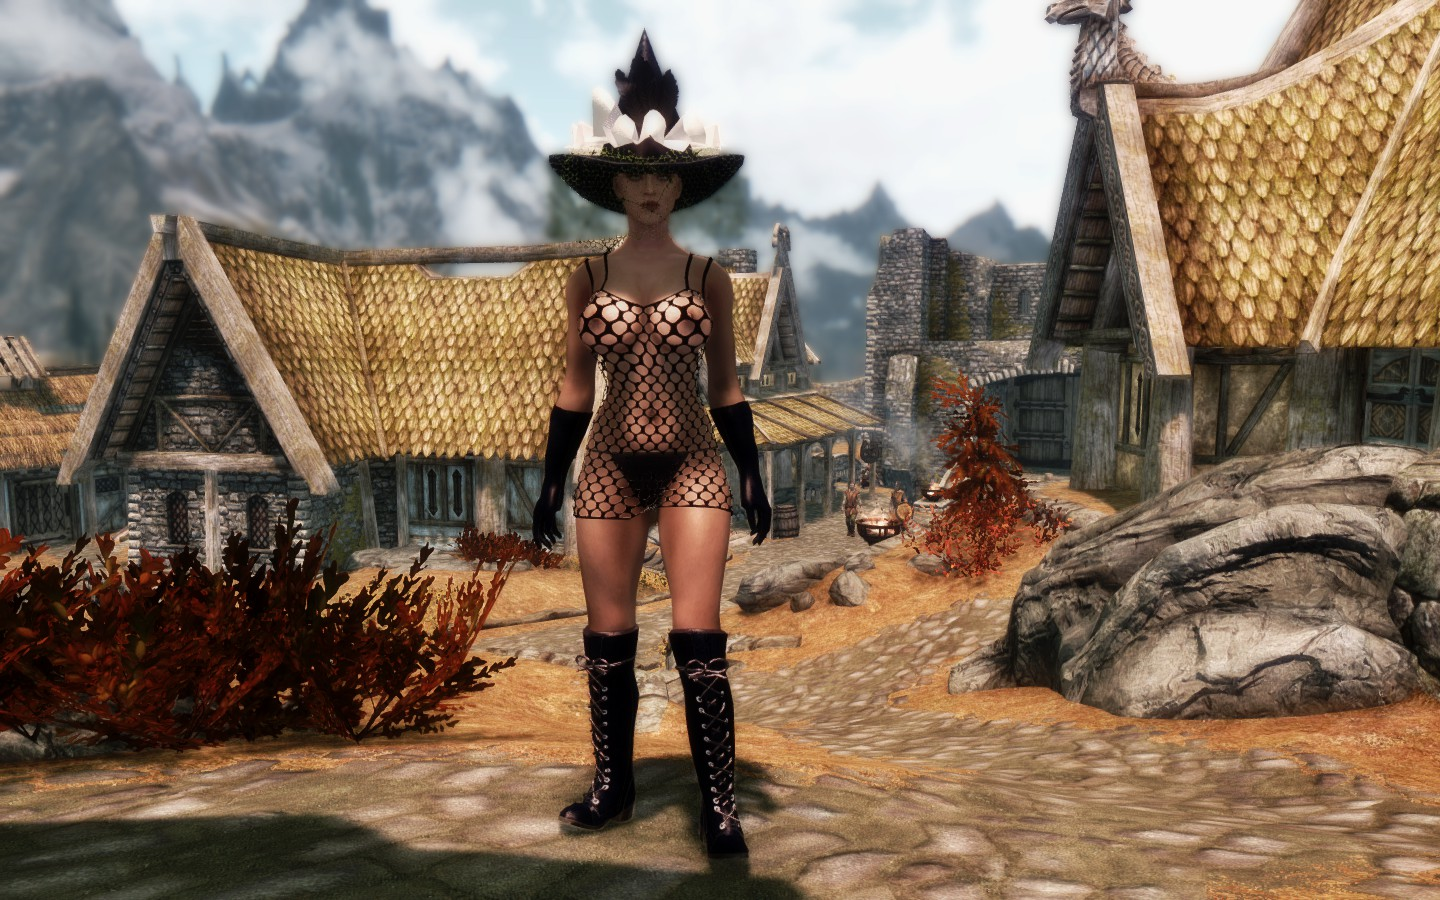 All Gloves Skyrim - Woonkamer decor ideeën - kafkasfan club